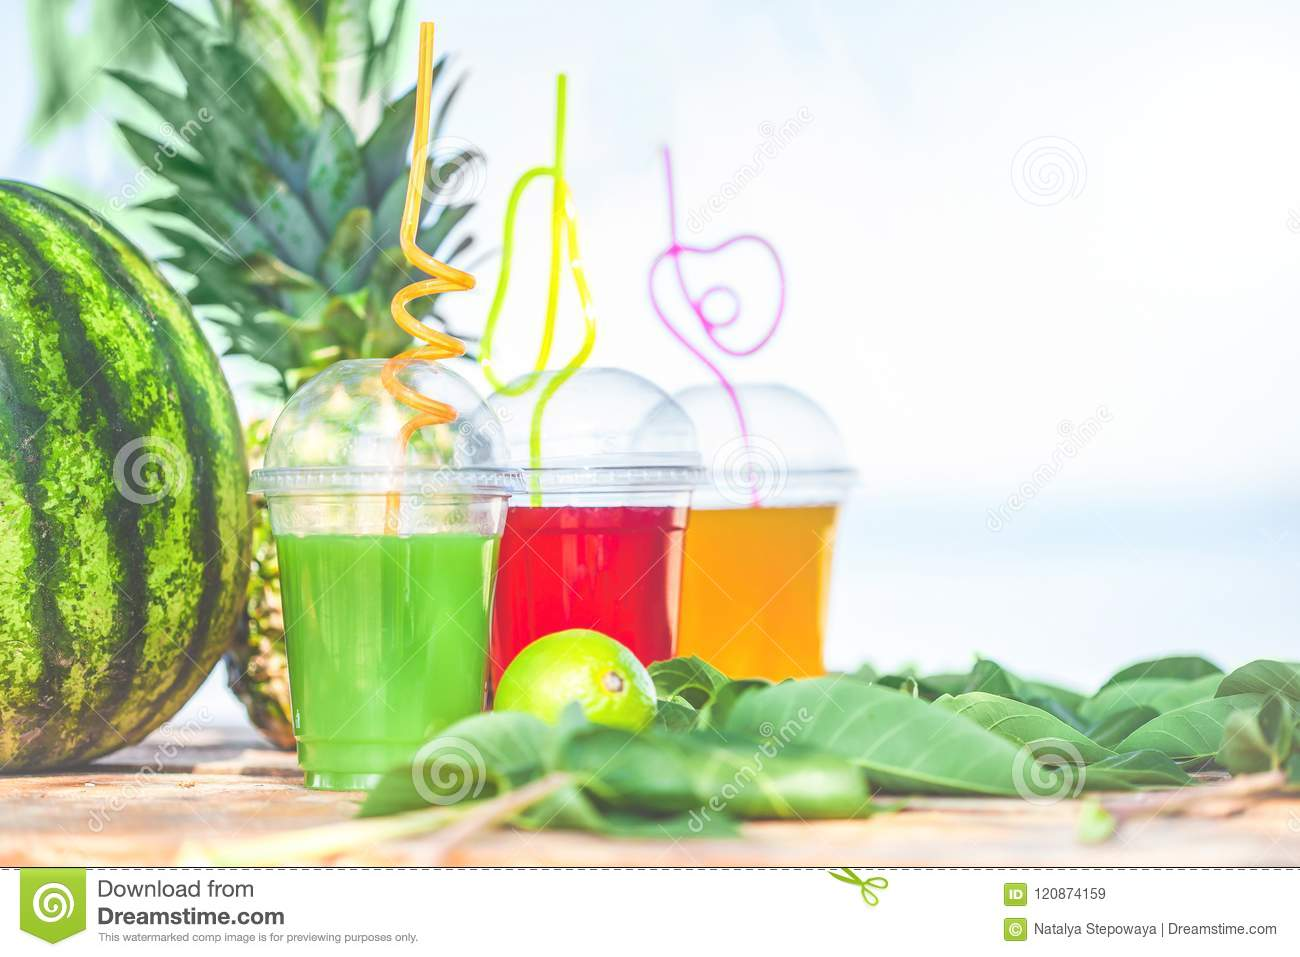 Bright Fresh healthy juices, fruit, pineapple, watermelon on the background of the sea. Summer, rest, healthy lifestyle